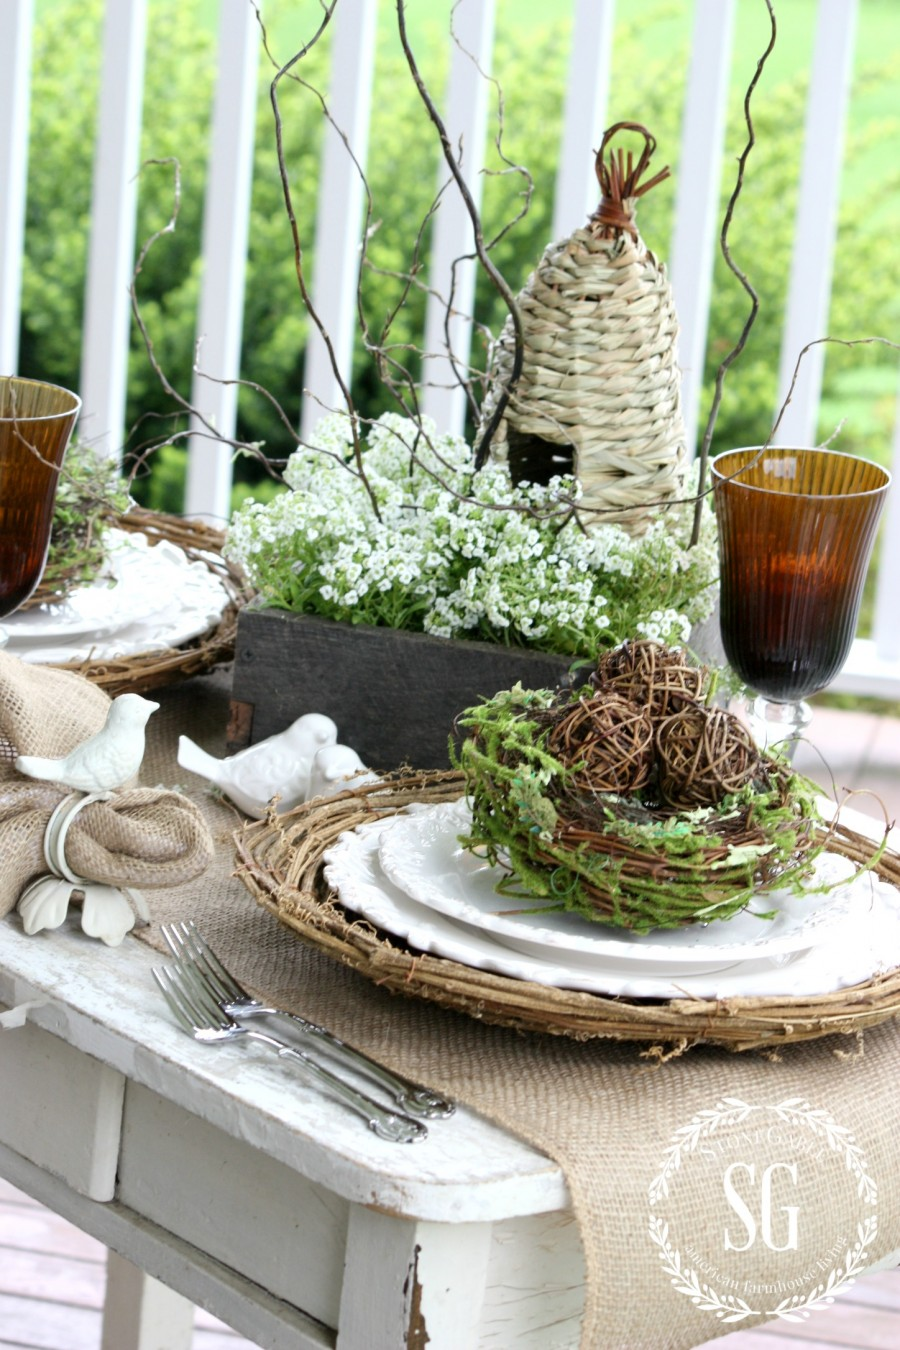 5 EASY TIPS FOR SETTING AN ORGANIC TABLE- Organic spring tablescape-stonegableblog.com